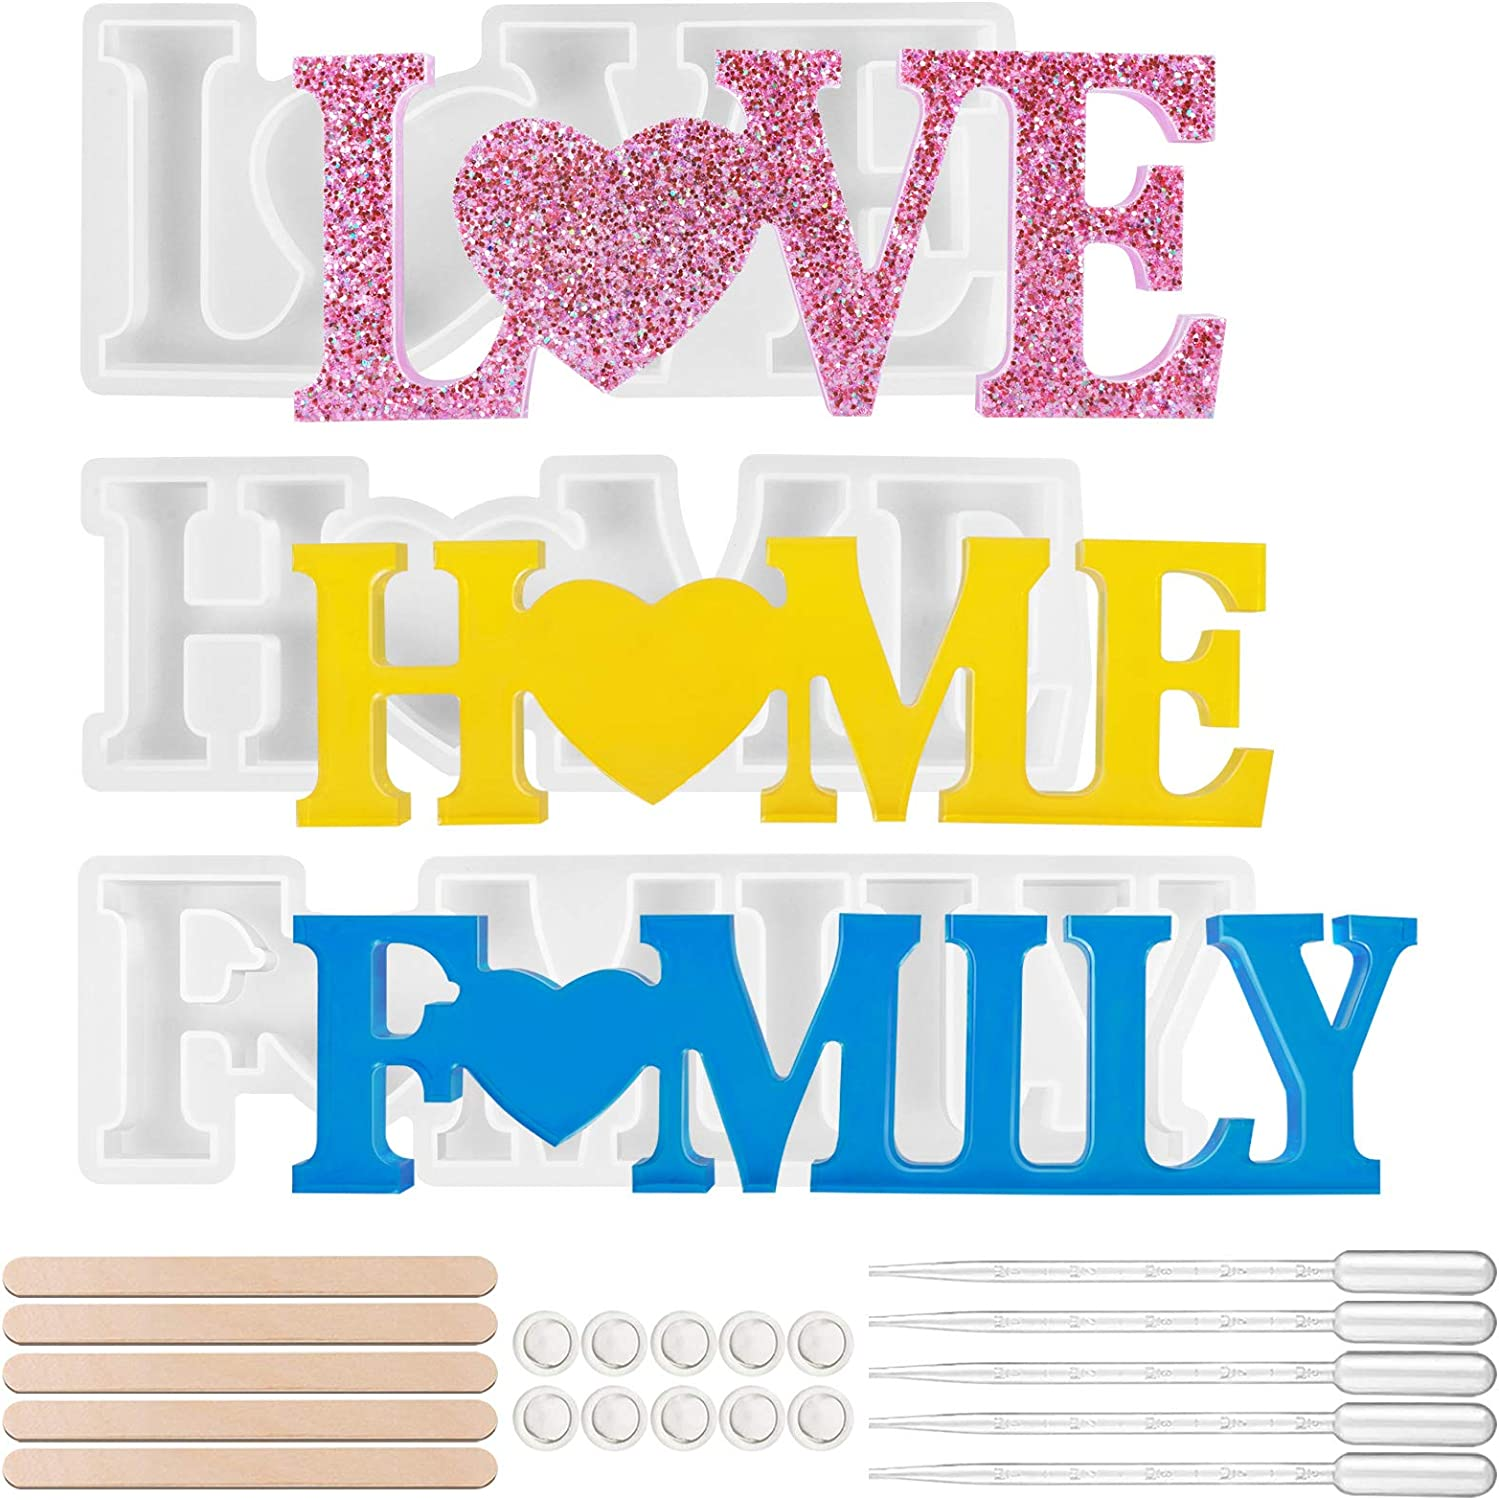 Resin Molds Silicone 3 Pcs Love Family Home Mold Set Unique Design Letters Crystal Resin Molds for DIY Epoxy Molds to Indoor/Home Decor